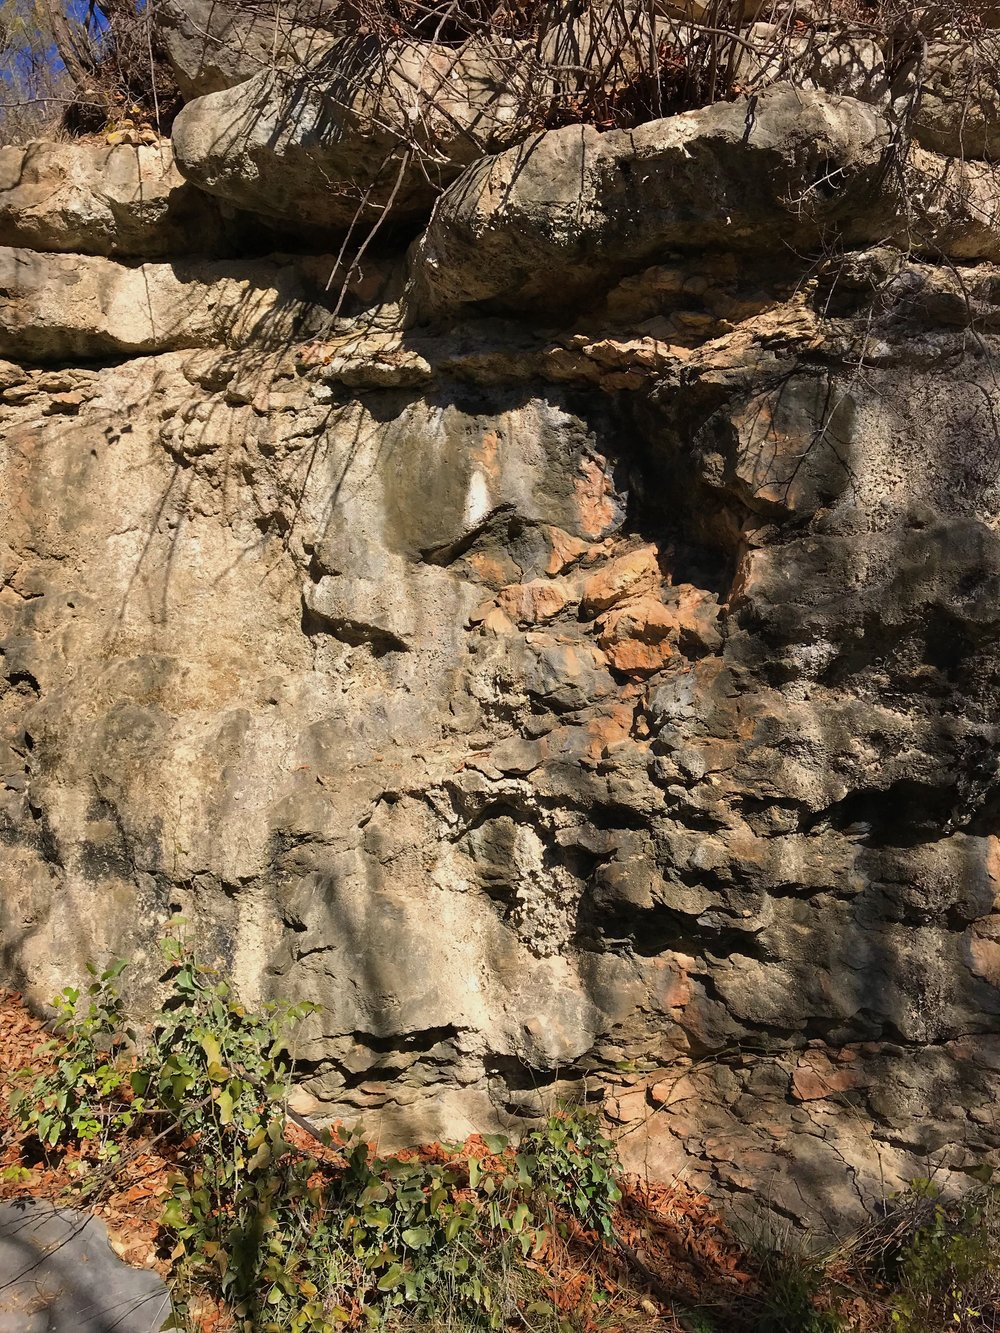 Limestone bluff with potential petroglyphs